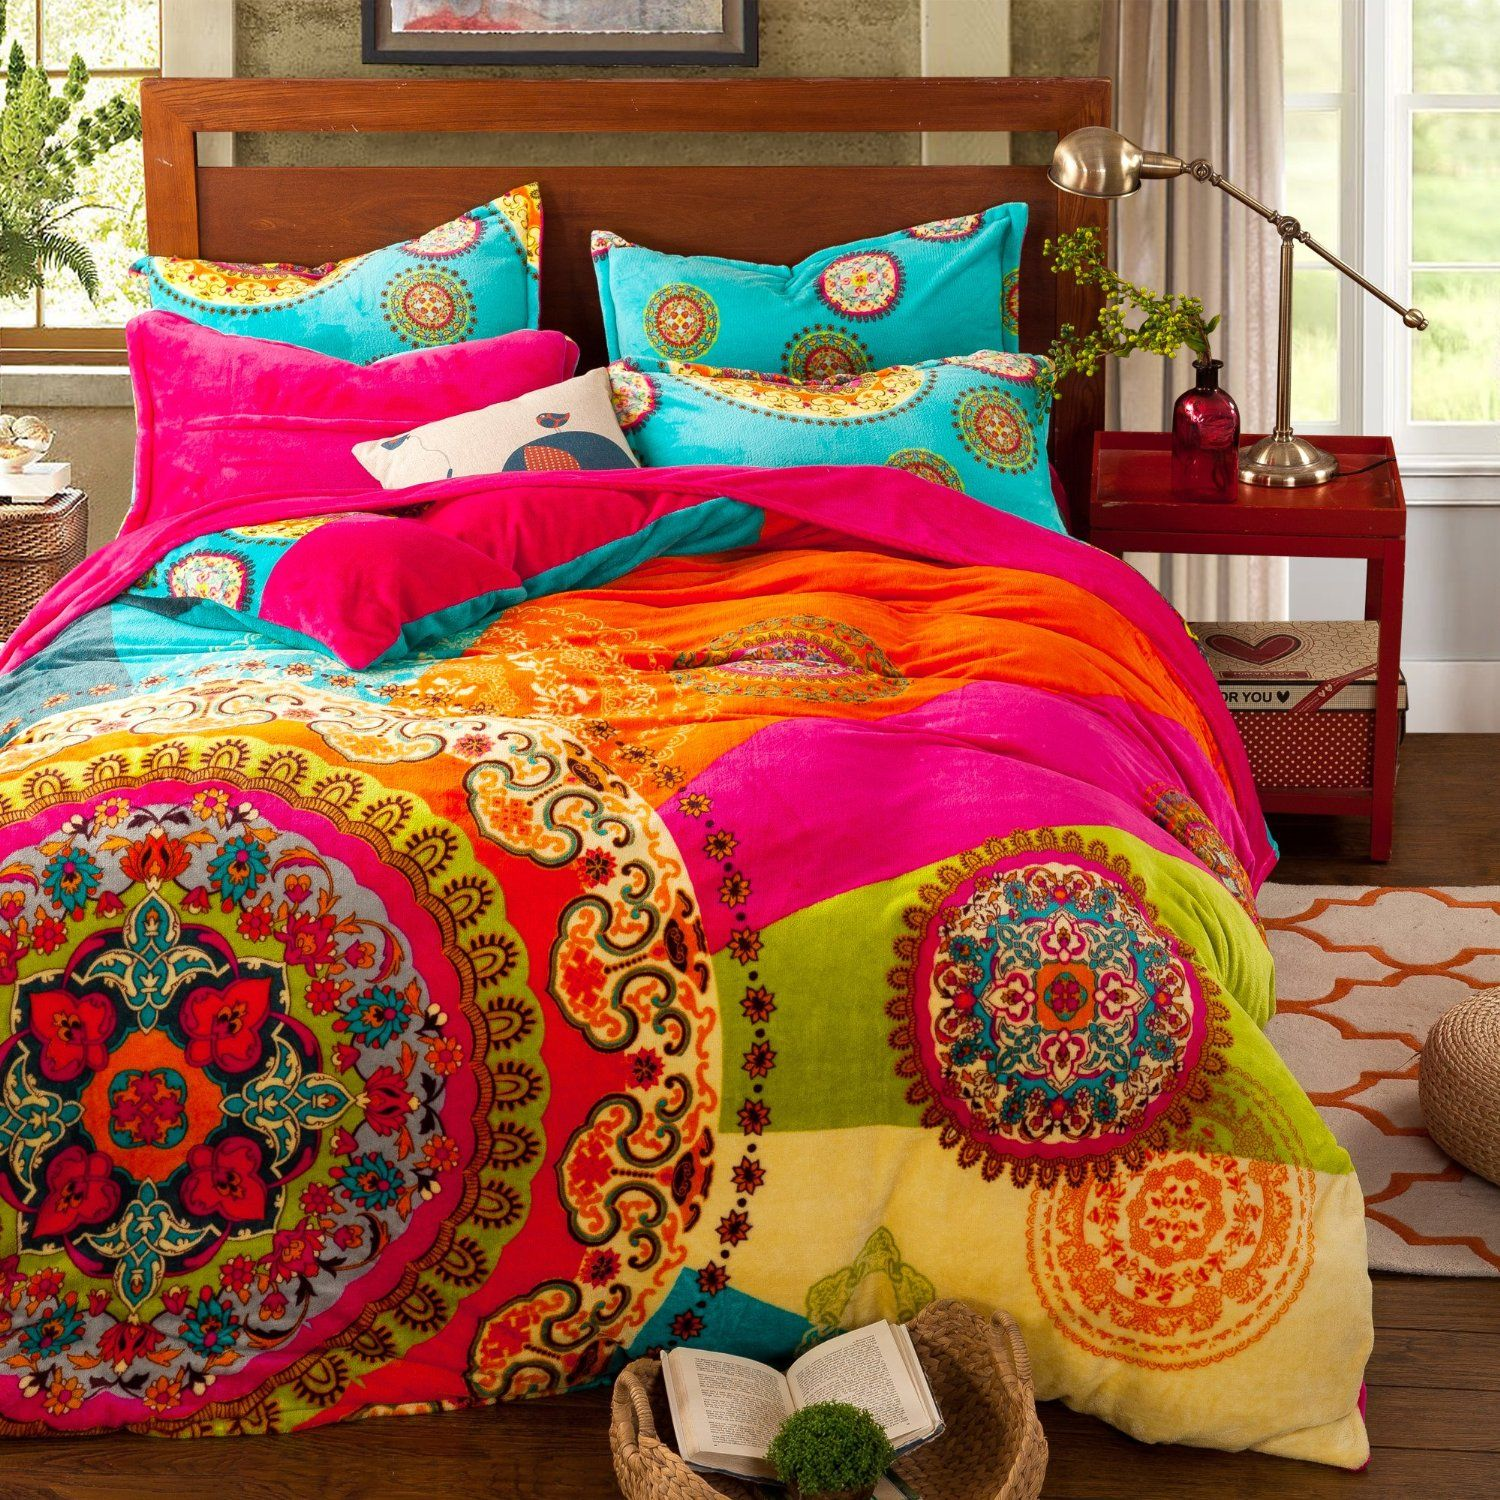 queen bedding bohemian burgundy for and stunning medallion colorful bedspreads extraordinary bath comforters ru comforter sets king decoration beyond lovely bedroom ideas luxury bed